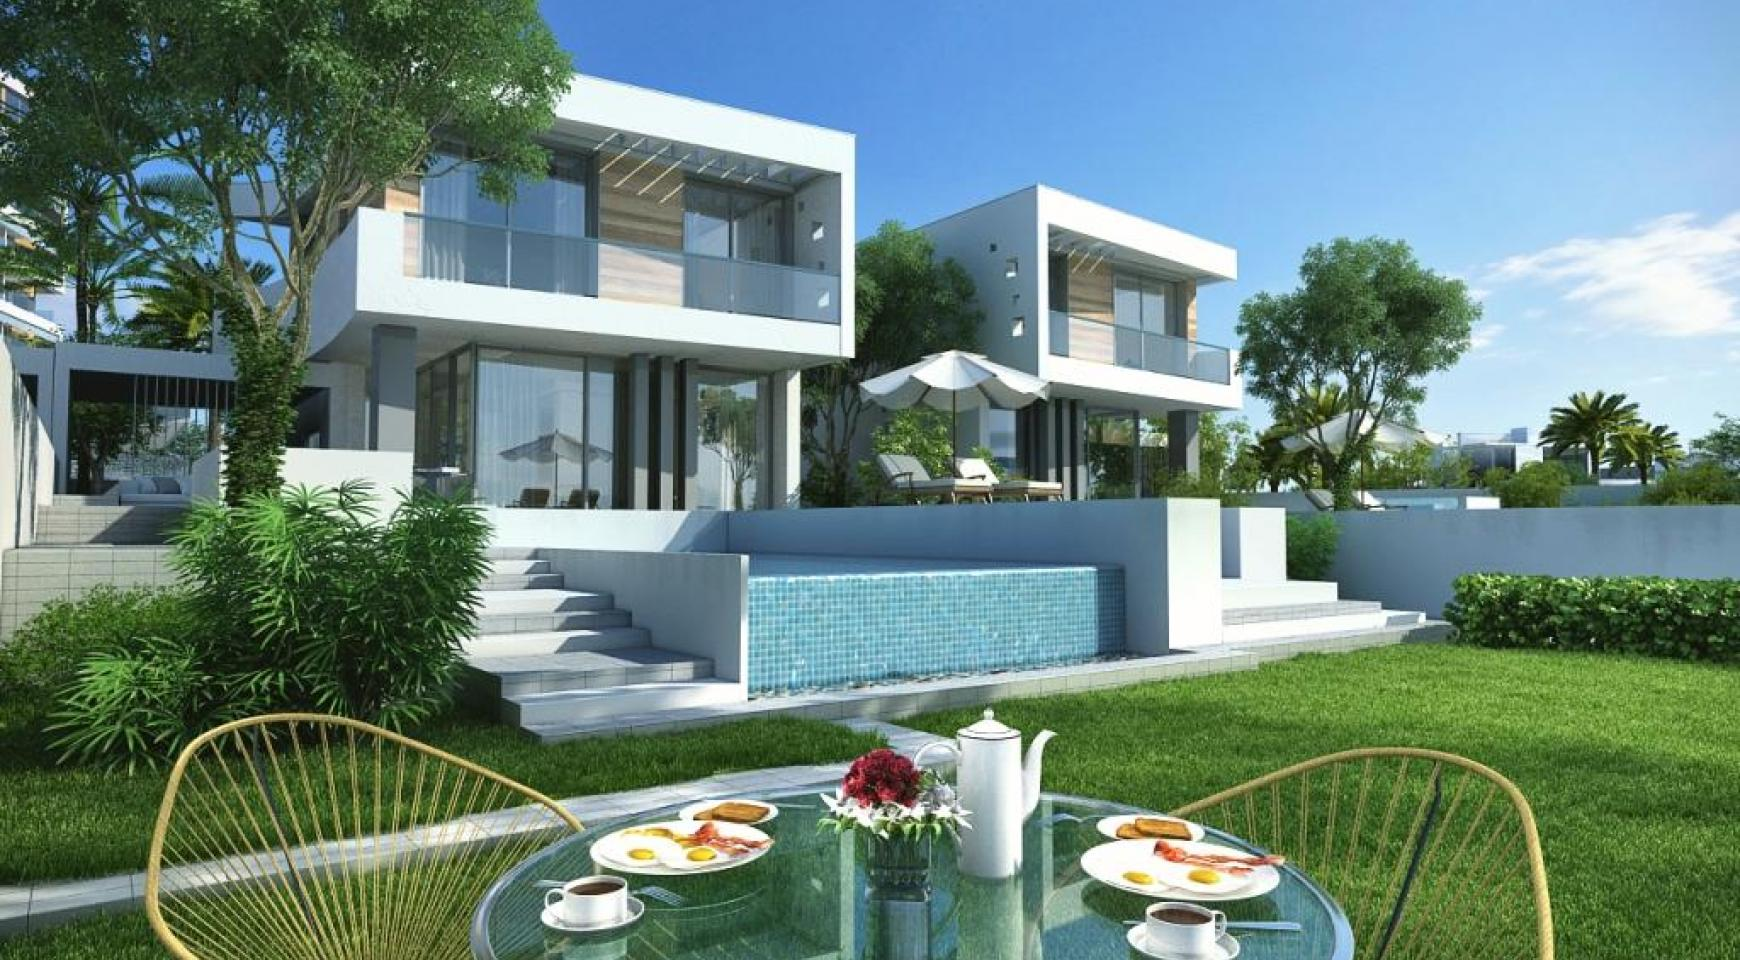 4 Bedroom Villa in a New Project by the Sea - 5